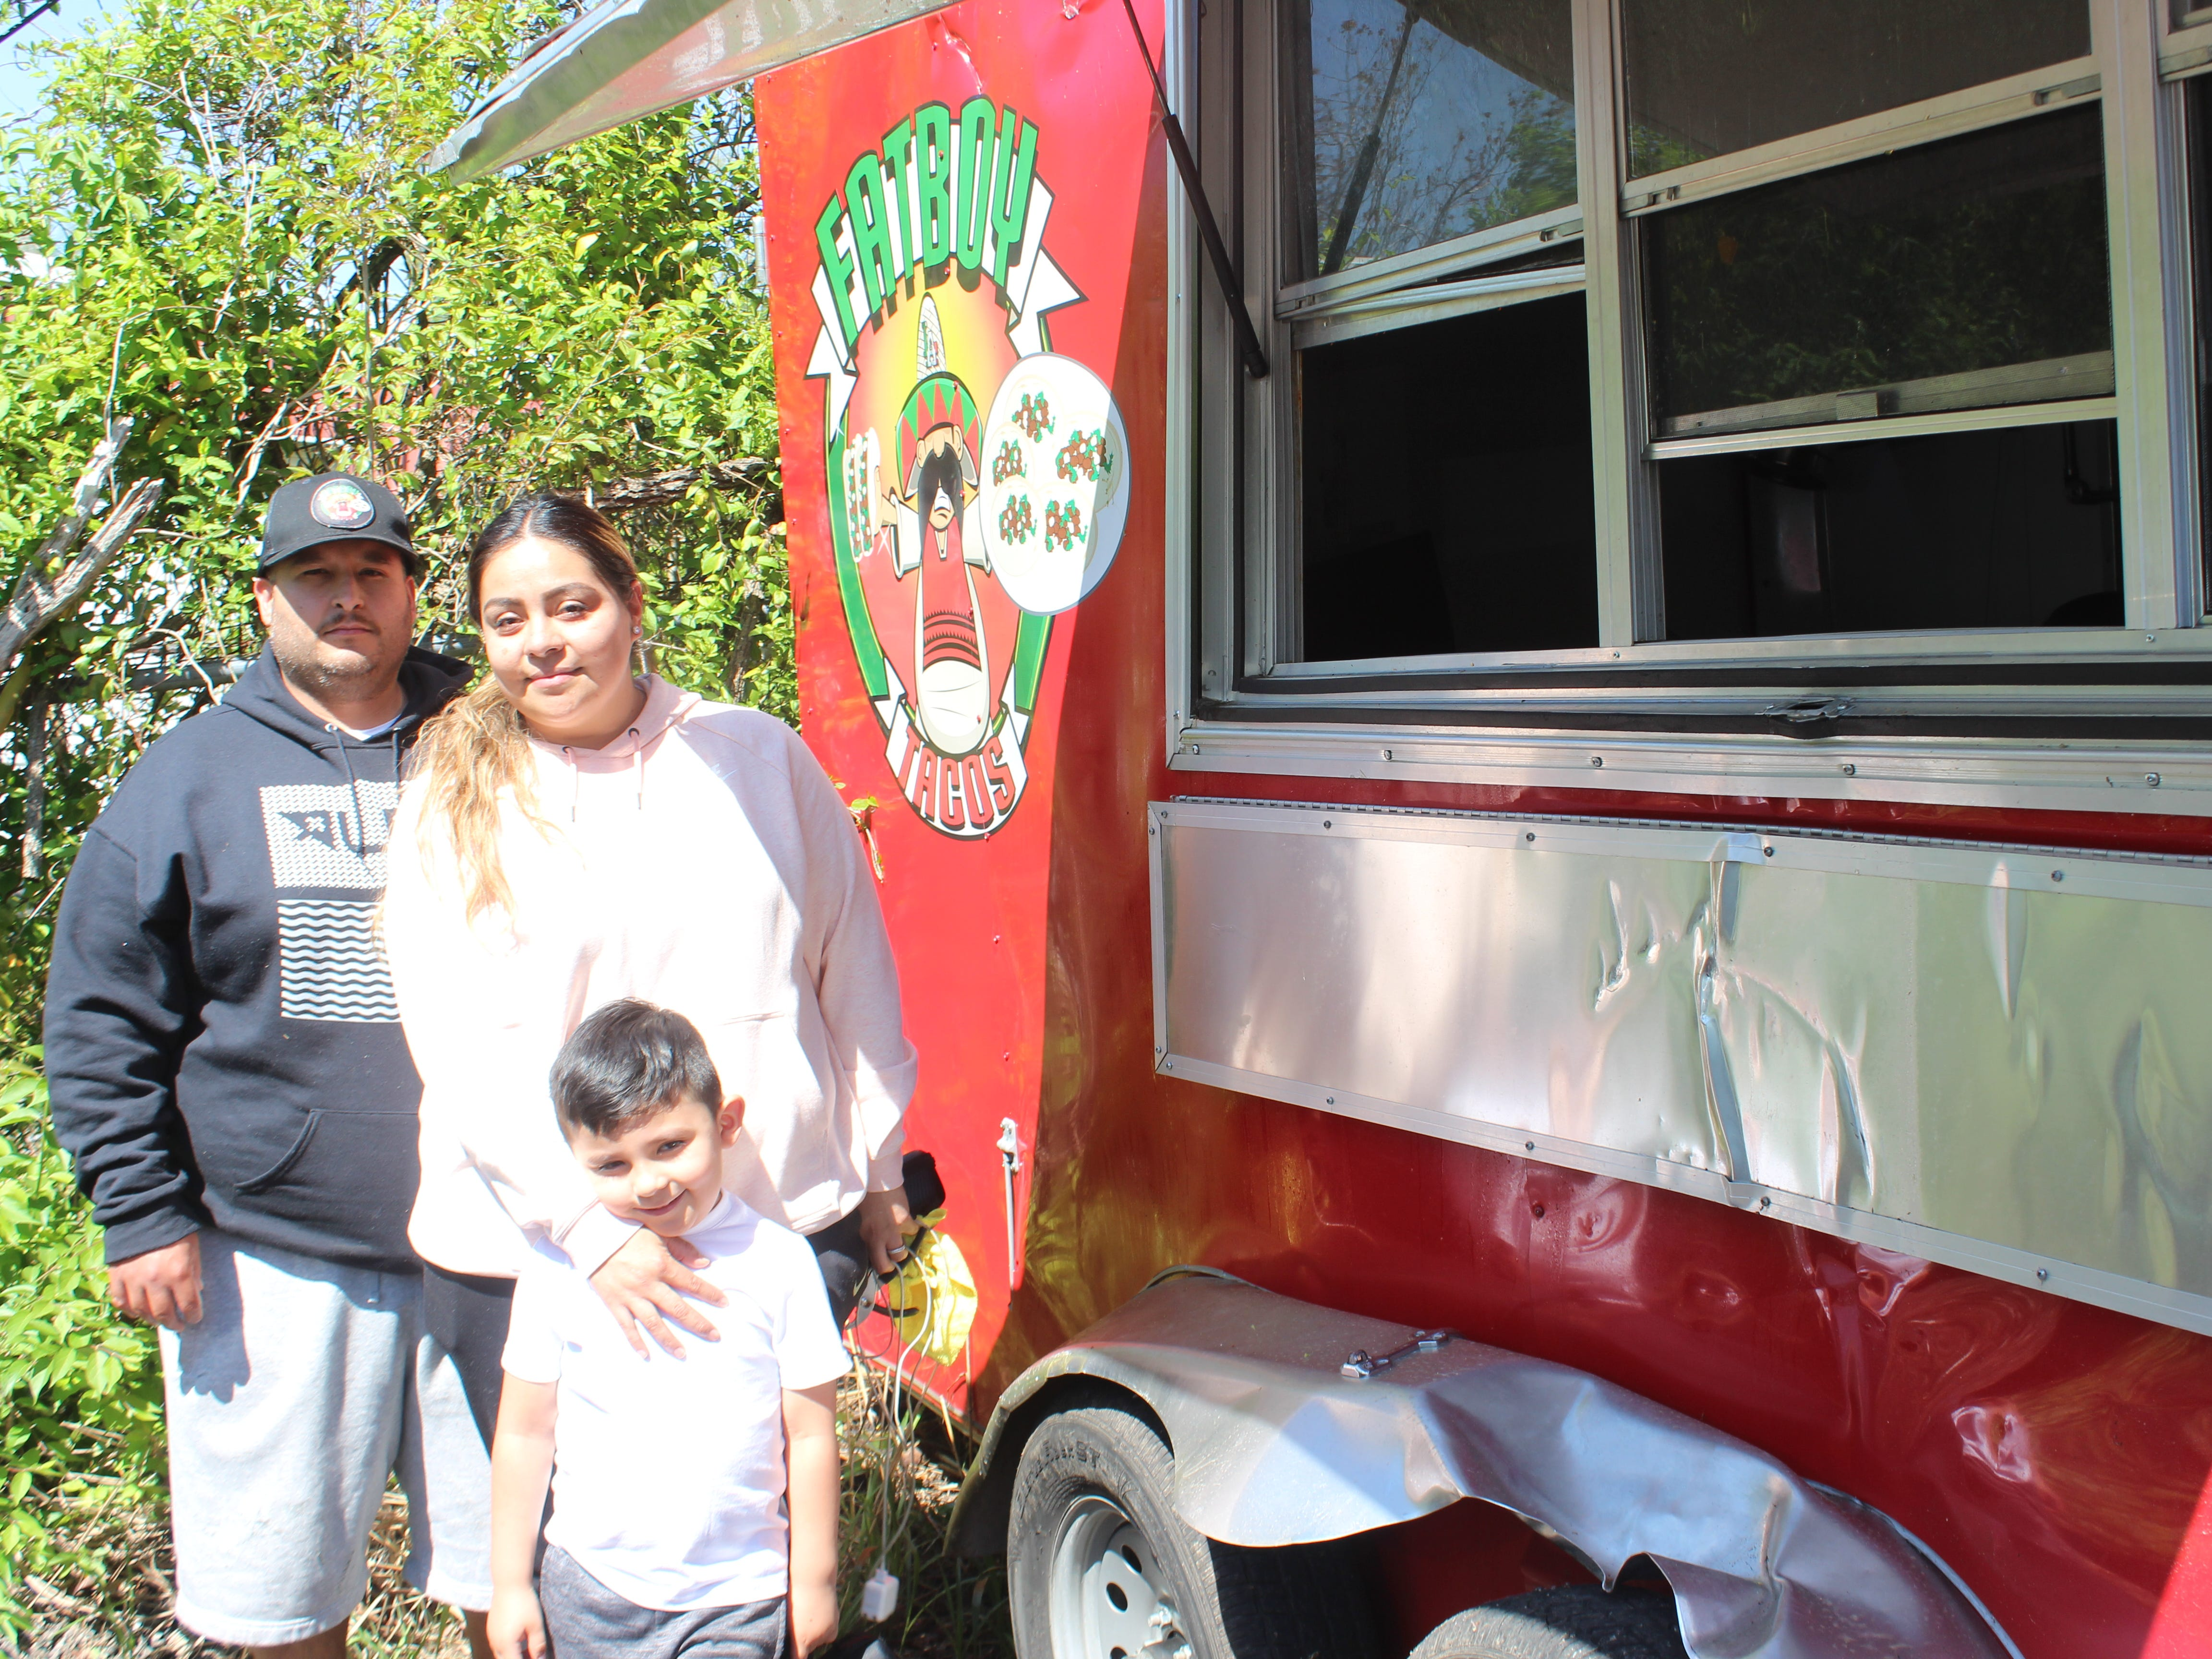 Adrian and Diana Gonzalez and their son Adrian Jr. stand outside the wrecked remains of their Fatboy Taco trailer, the family business that was destroyed in an accident in Clarksville on Saturday, April 13, 2019.